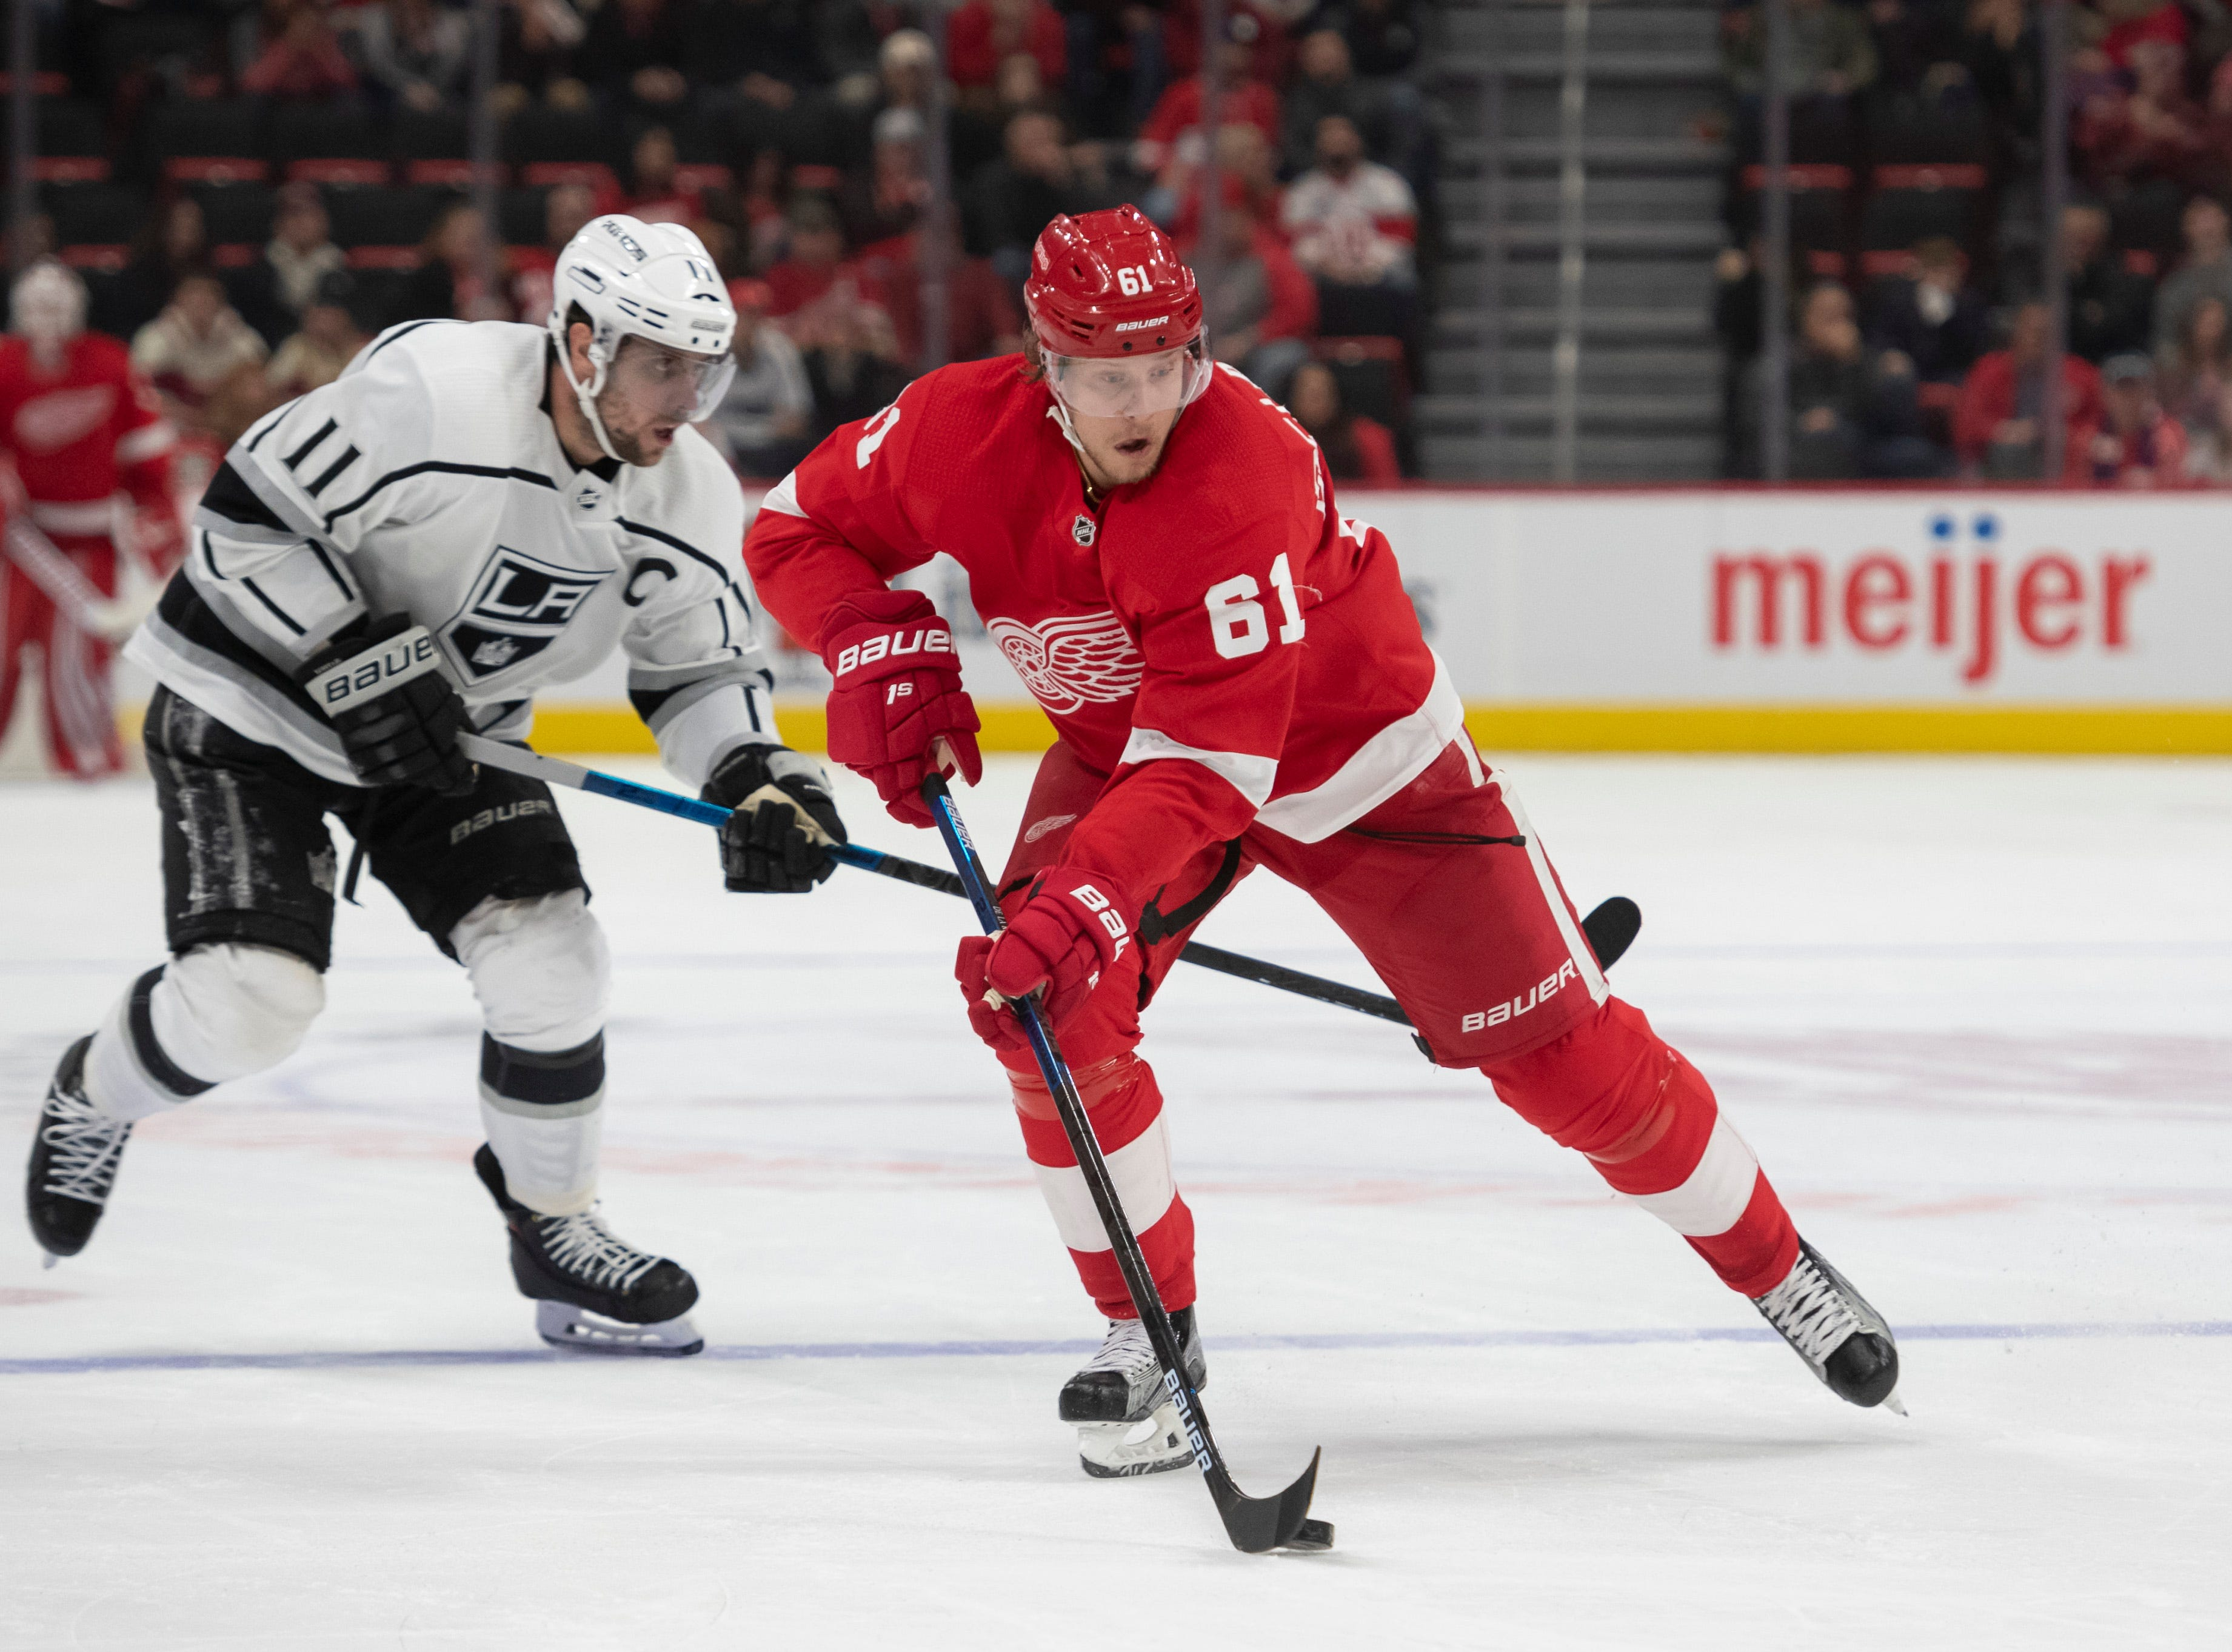 Detroit left wing Jacob De La Rose moves the puck away from Los Angeles center Anze Kopitar in the third period.               Photos are of the Detroit Red Wings vs. the Los Angeles Kings, at Little Caesars Arena, in Detroit, December 10, 2018.  (David Guralnick / The Detroit News)